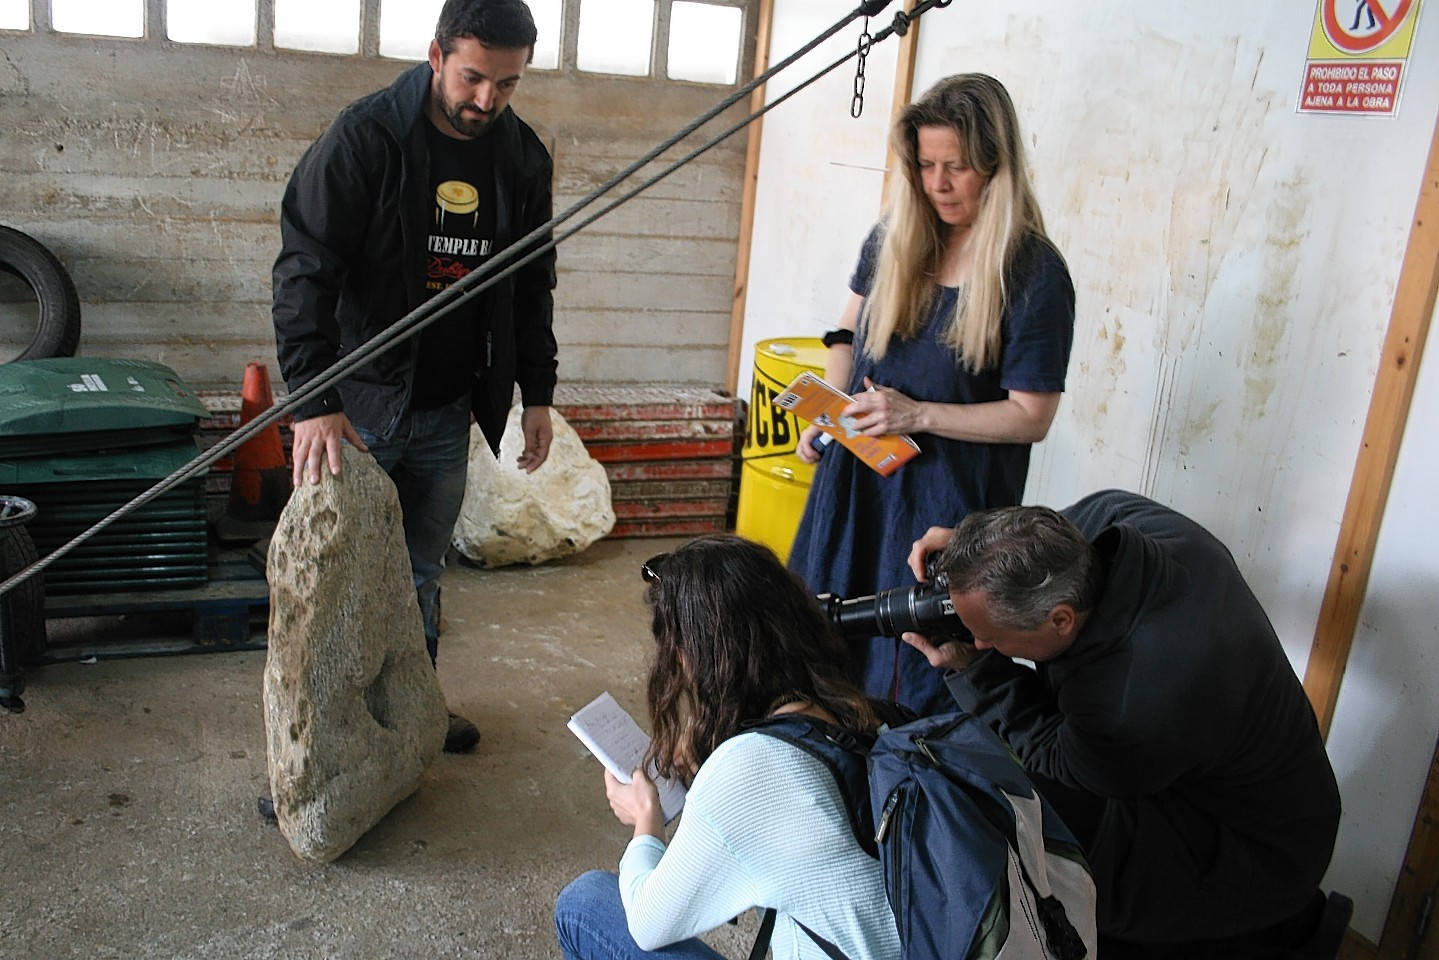 Dr Losquiño and Dr Fallgren from the University of Aberdeen are researching Viking raids on Spain's northern coast.